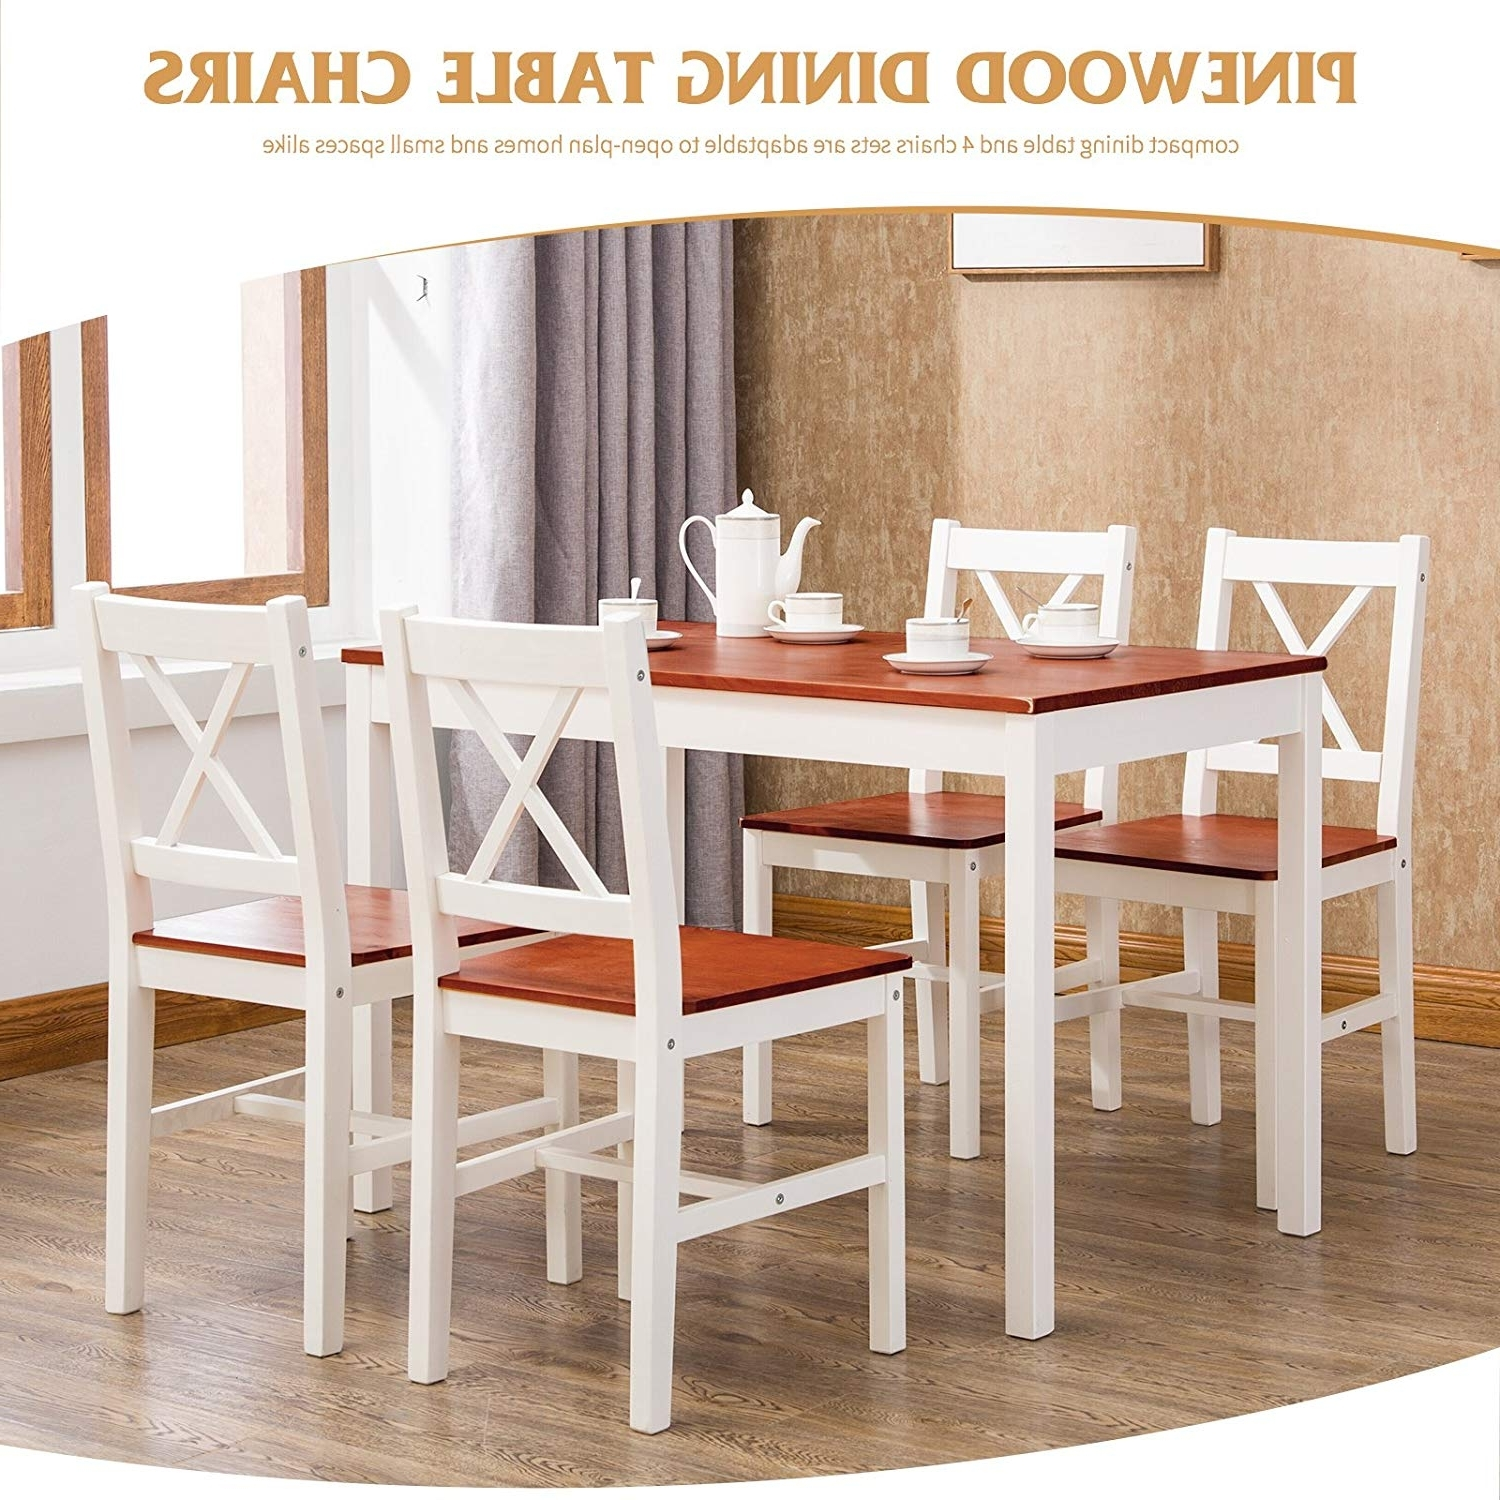 Well Known Compact Dining Room Sets For Amazon – Mecor 5 Piece Kitchen Dining Table Set, 4 Wood Chairs (View 12 of 25)